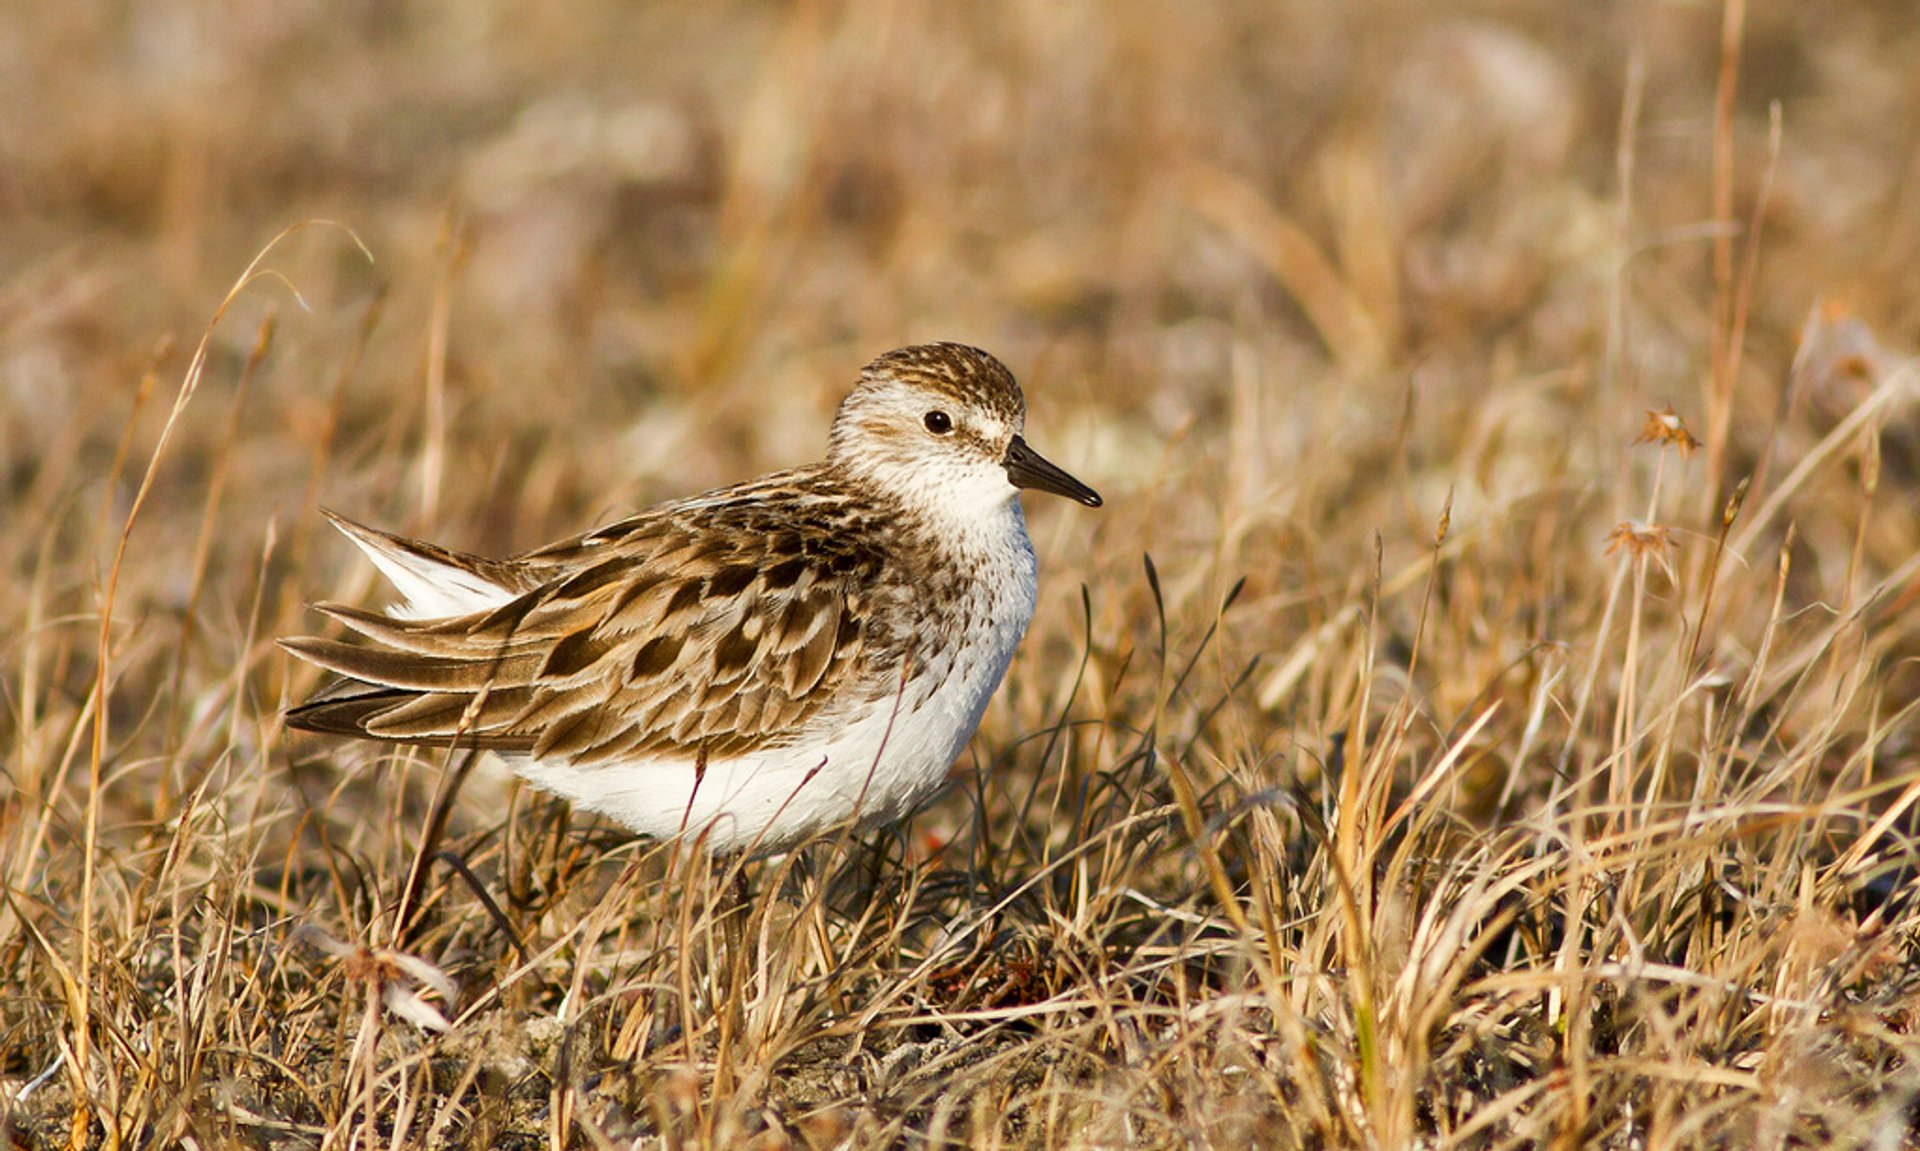 Semipalmated Sandpiper, North Slope Borough, Alaska 2019